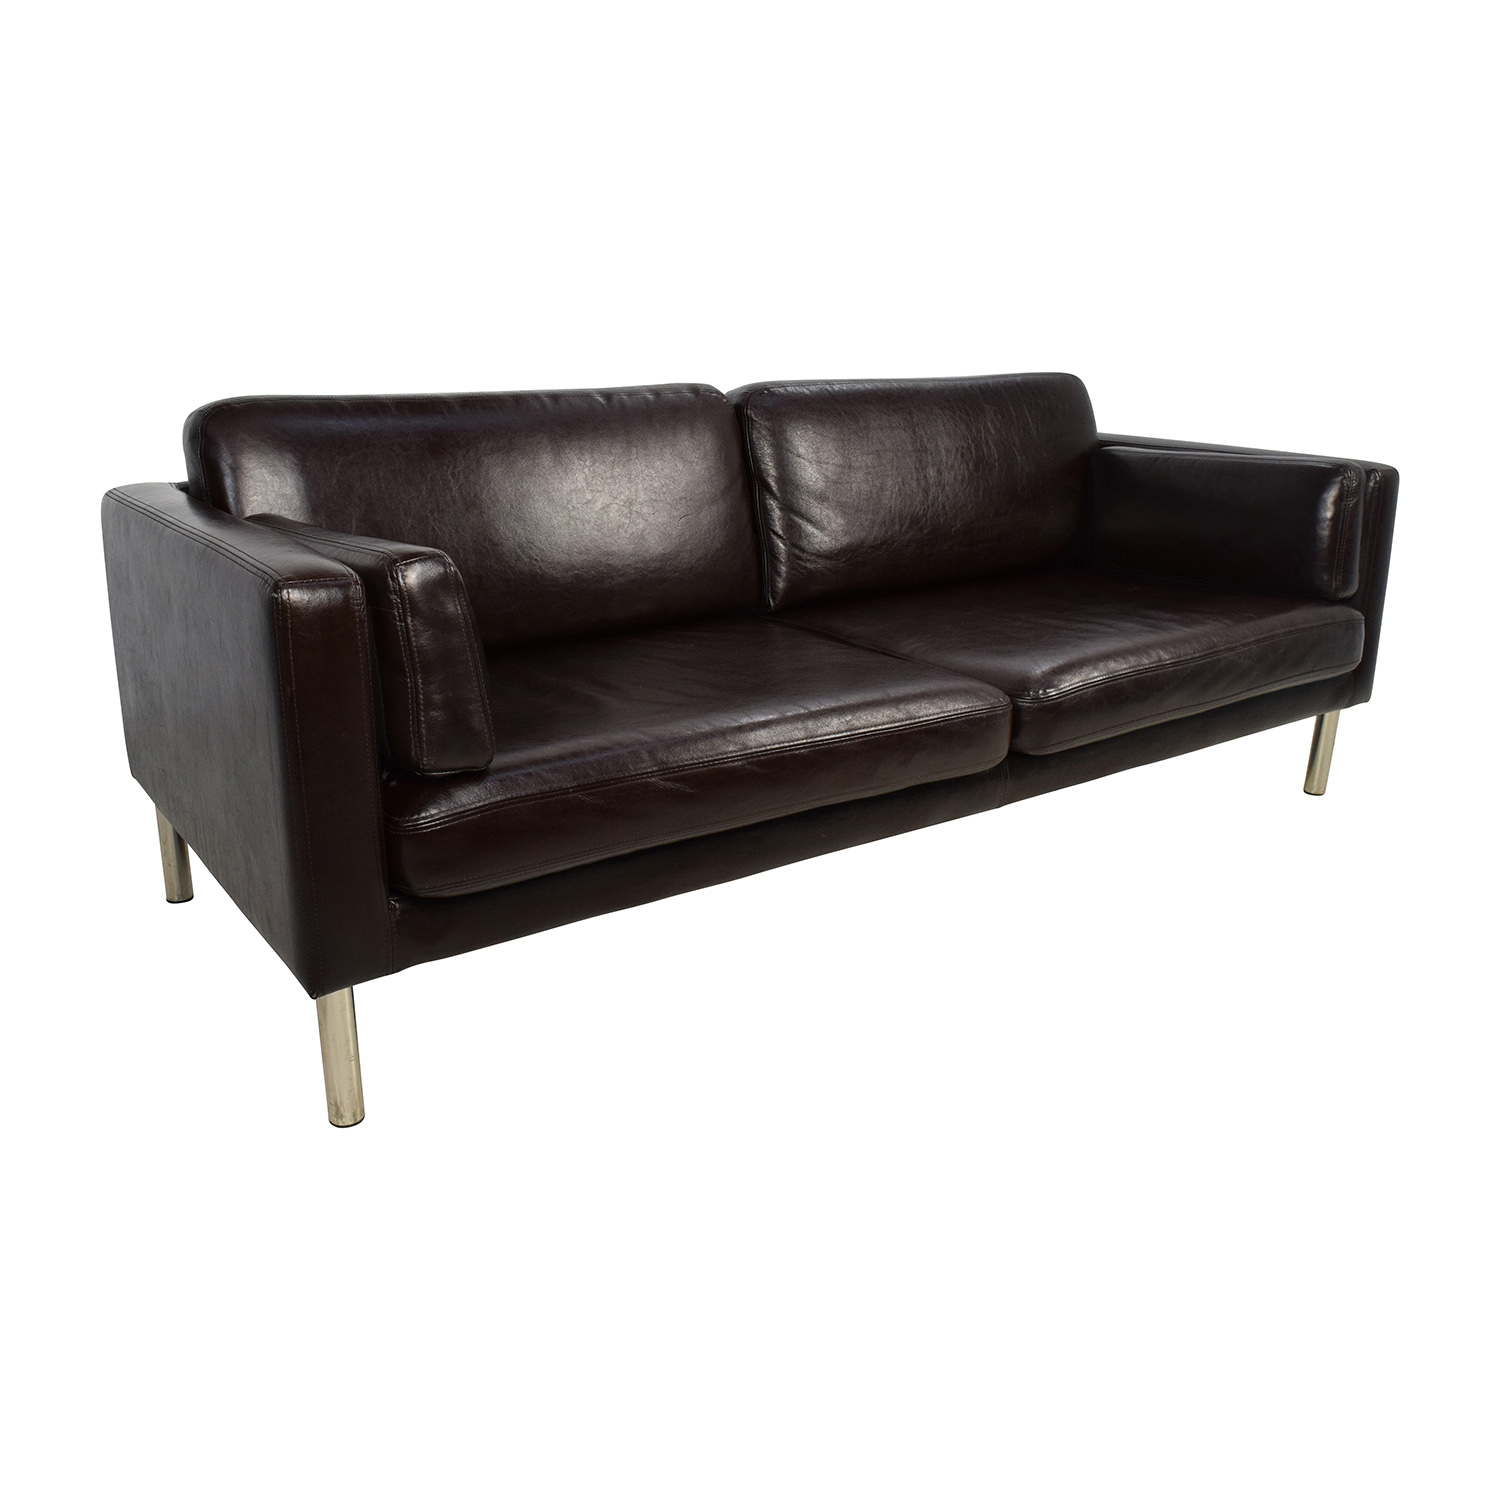 Used Leather Sectional Sofa For Sale Sectional Sofa Design Recomendation Used Sectional Sofa